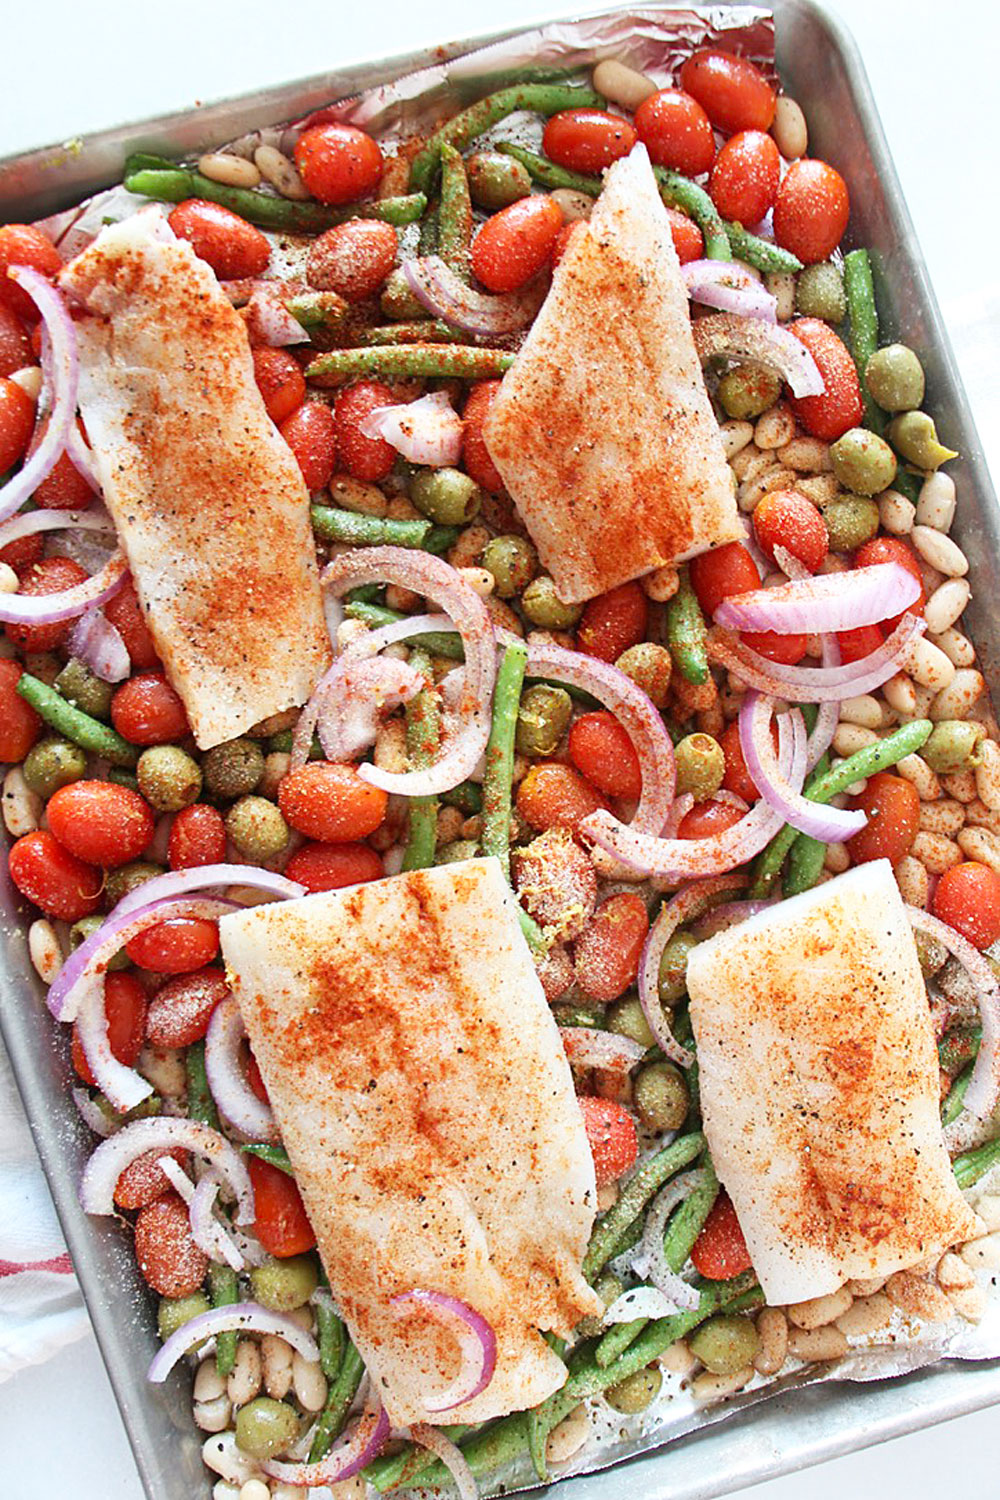 Sheet Pan Cod and Veggie Recipe. This is a quick weeknight dinner with very little clean up. Cod is the perfect fish recipe for an easy mild fish flavor. Happy Cooking! www.C hopHappy.com #codrecipes #fishrecipes